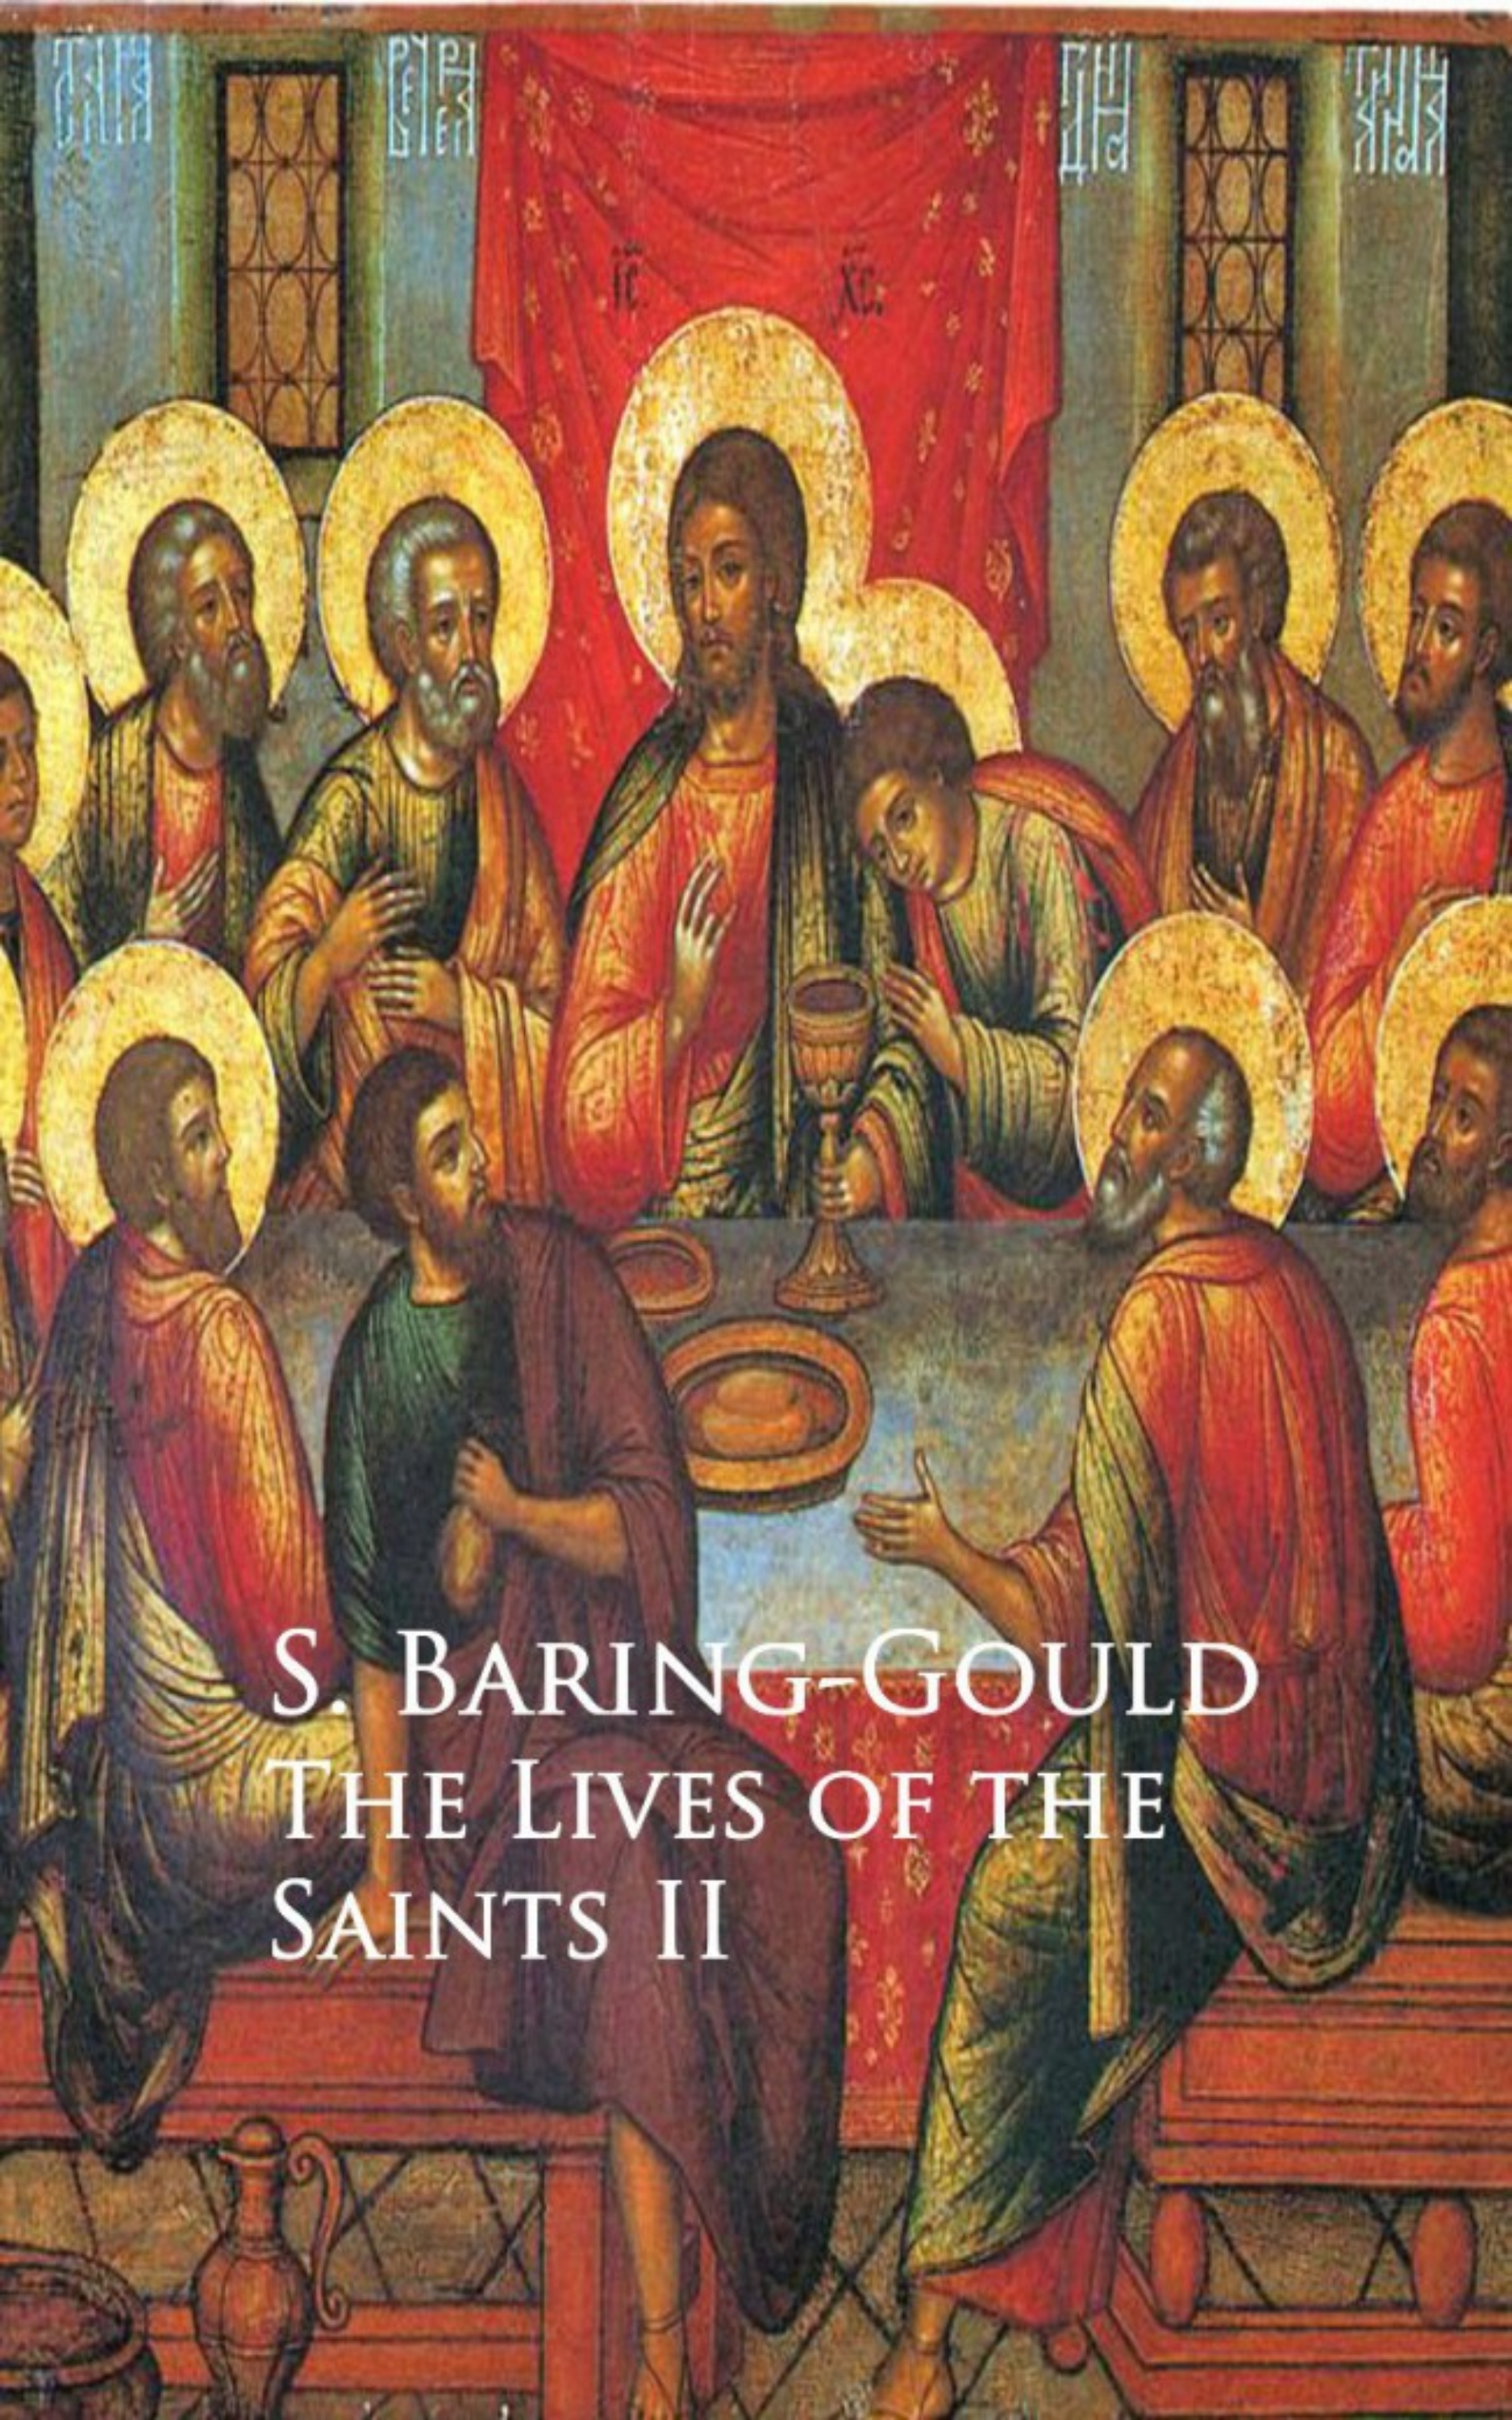 S. Baring-Gould The Lives of the Saints city of saints